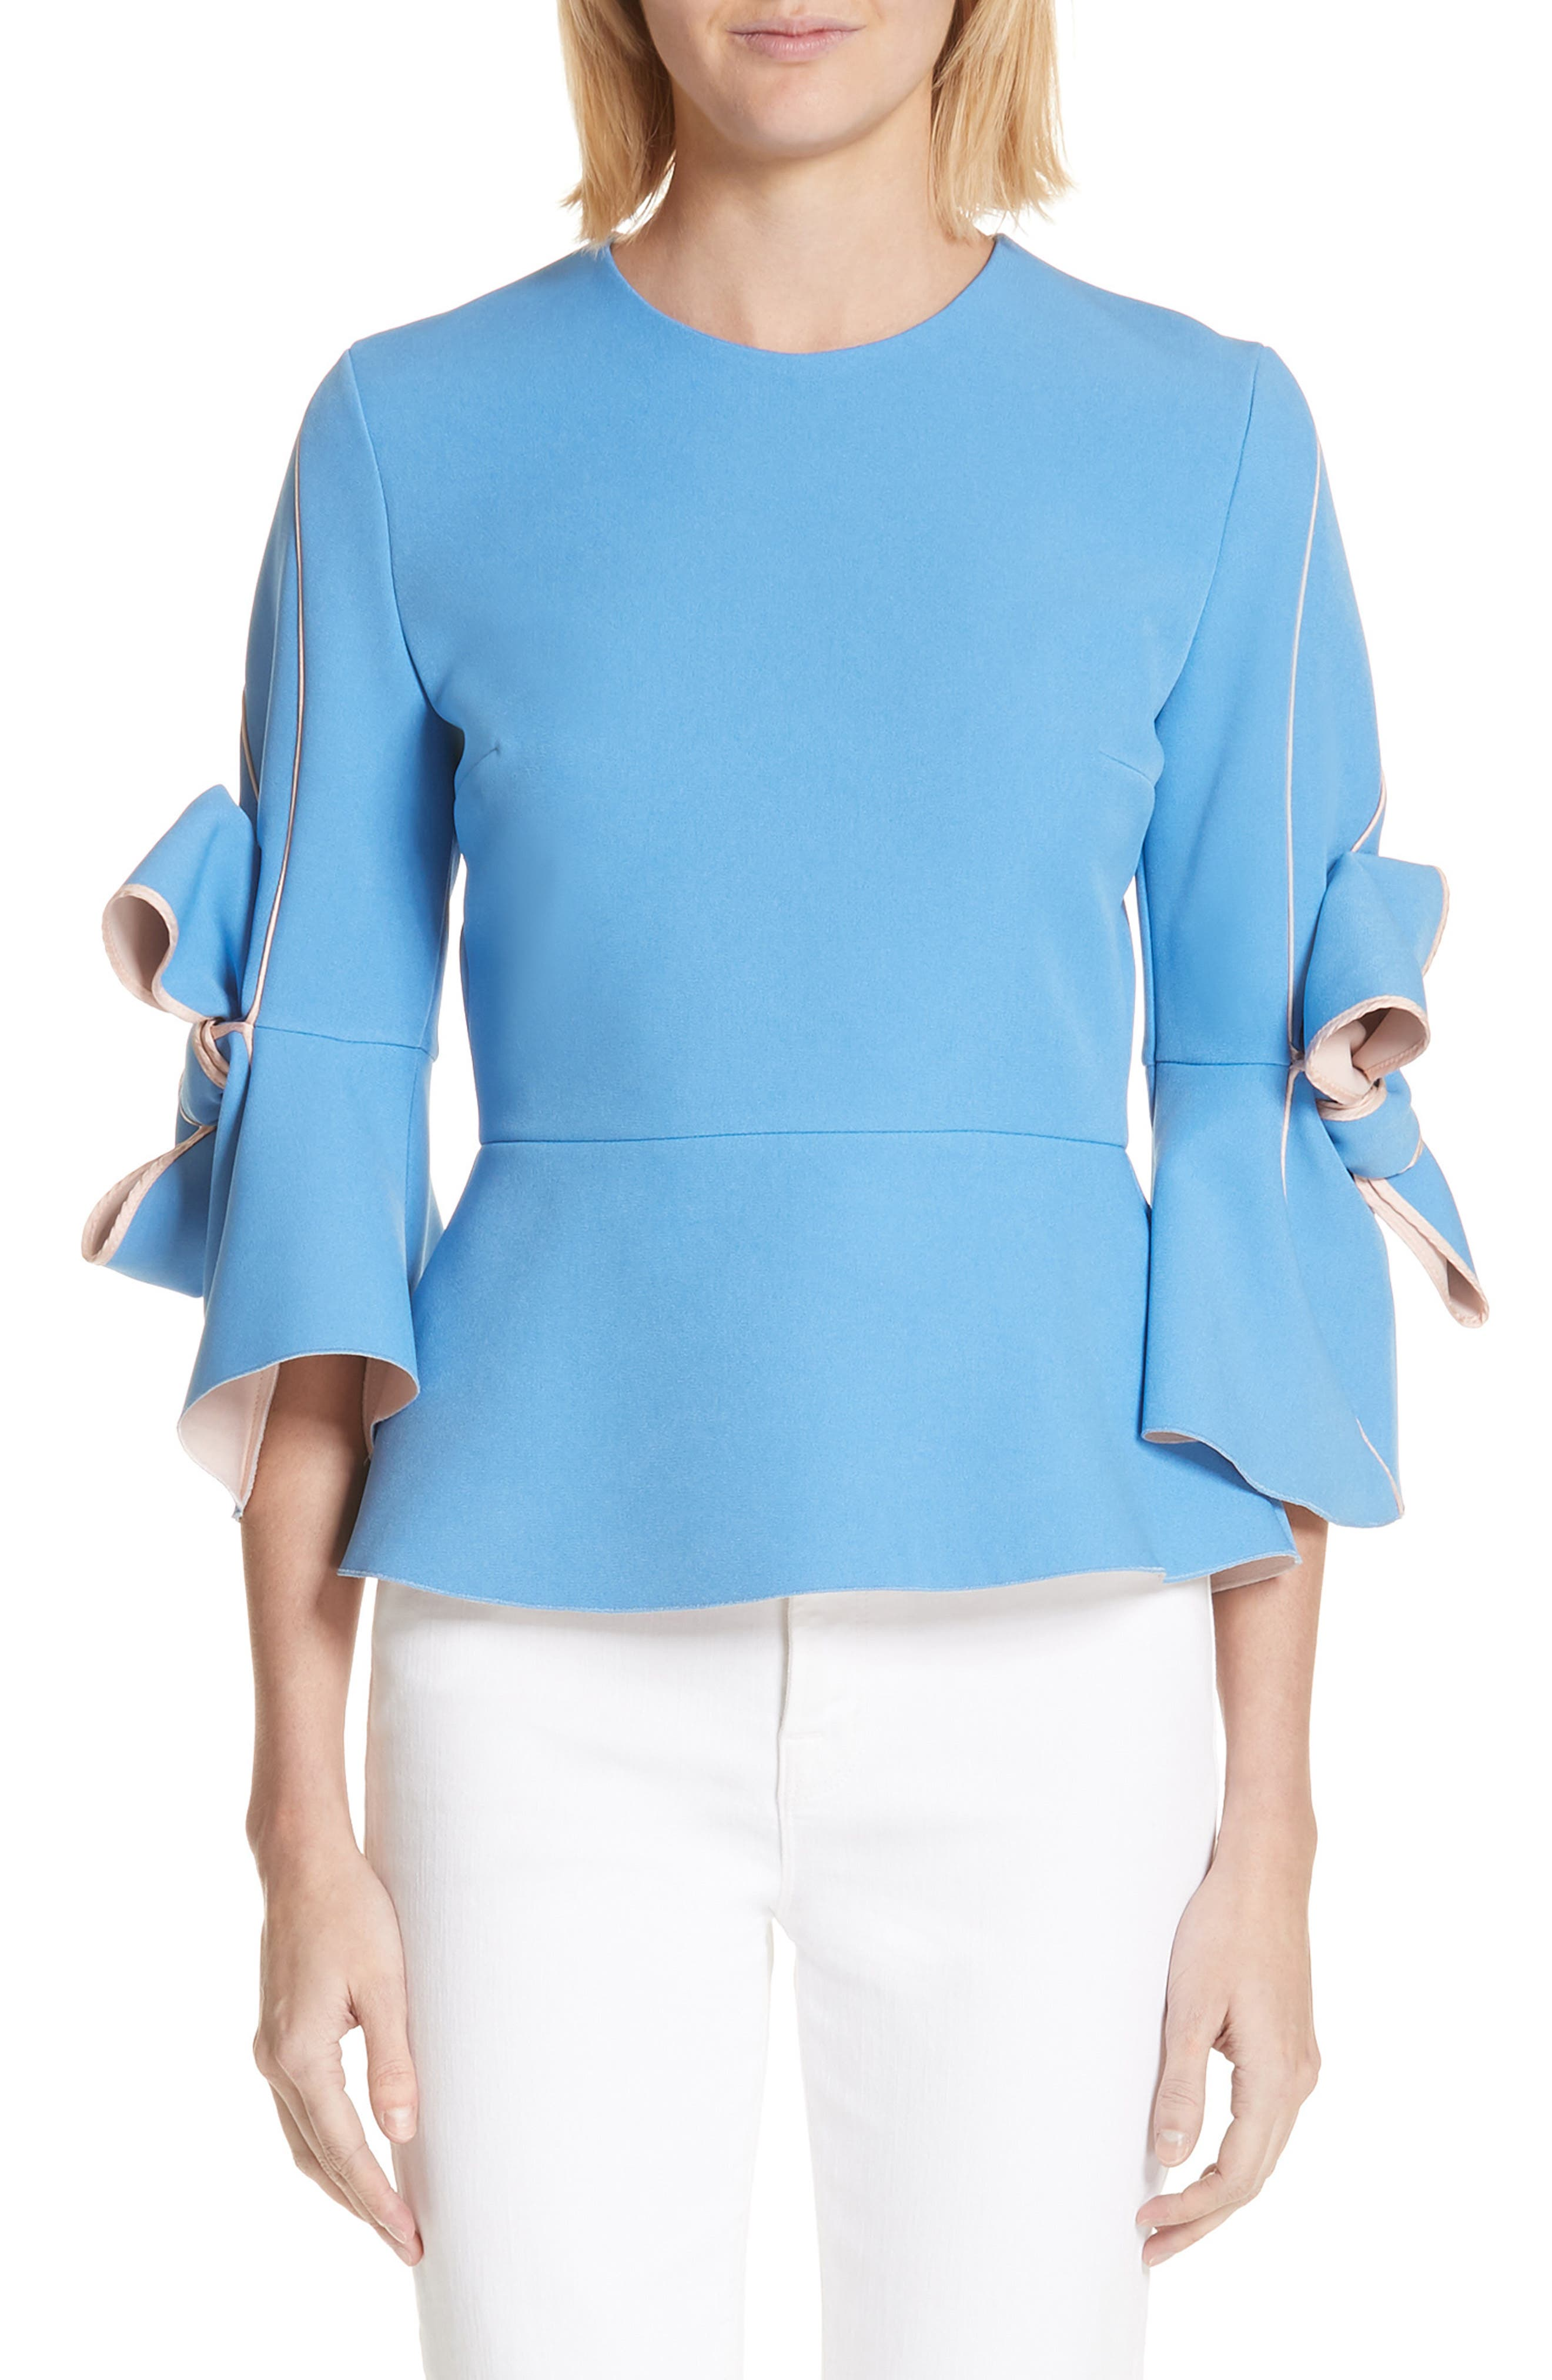 Kemi Bow Trim Top,                         Main,                         color, 400